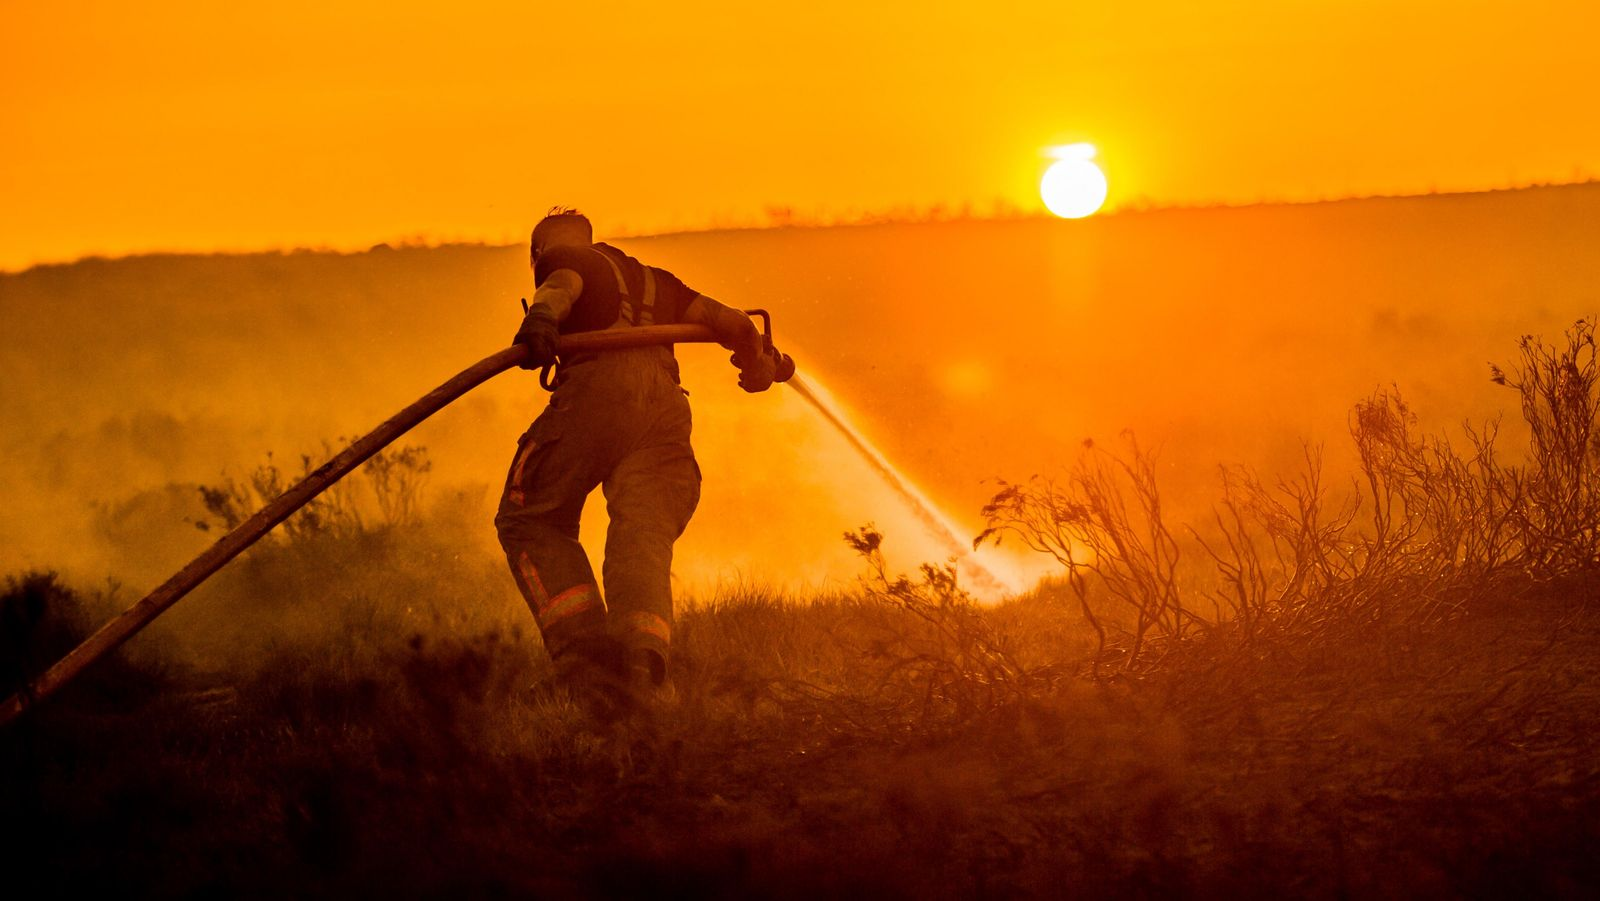 British wildfires are getting more frequent. Here's what that means. (27 Apr 2020)